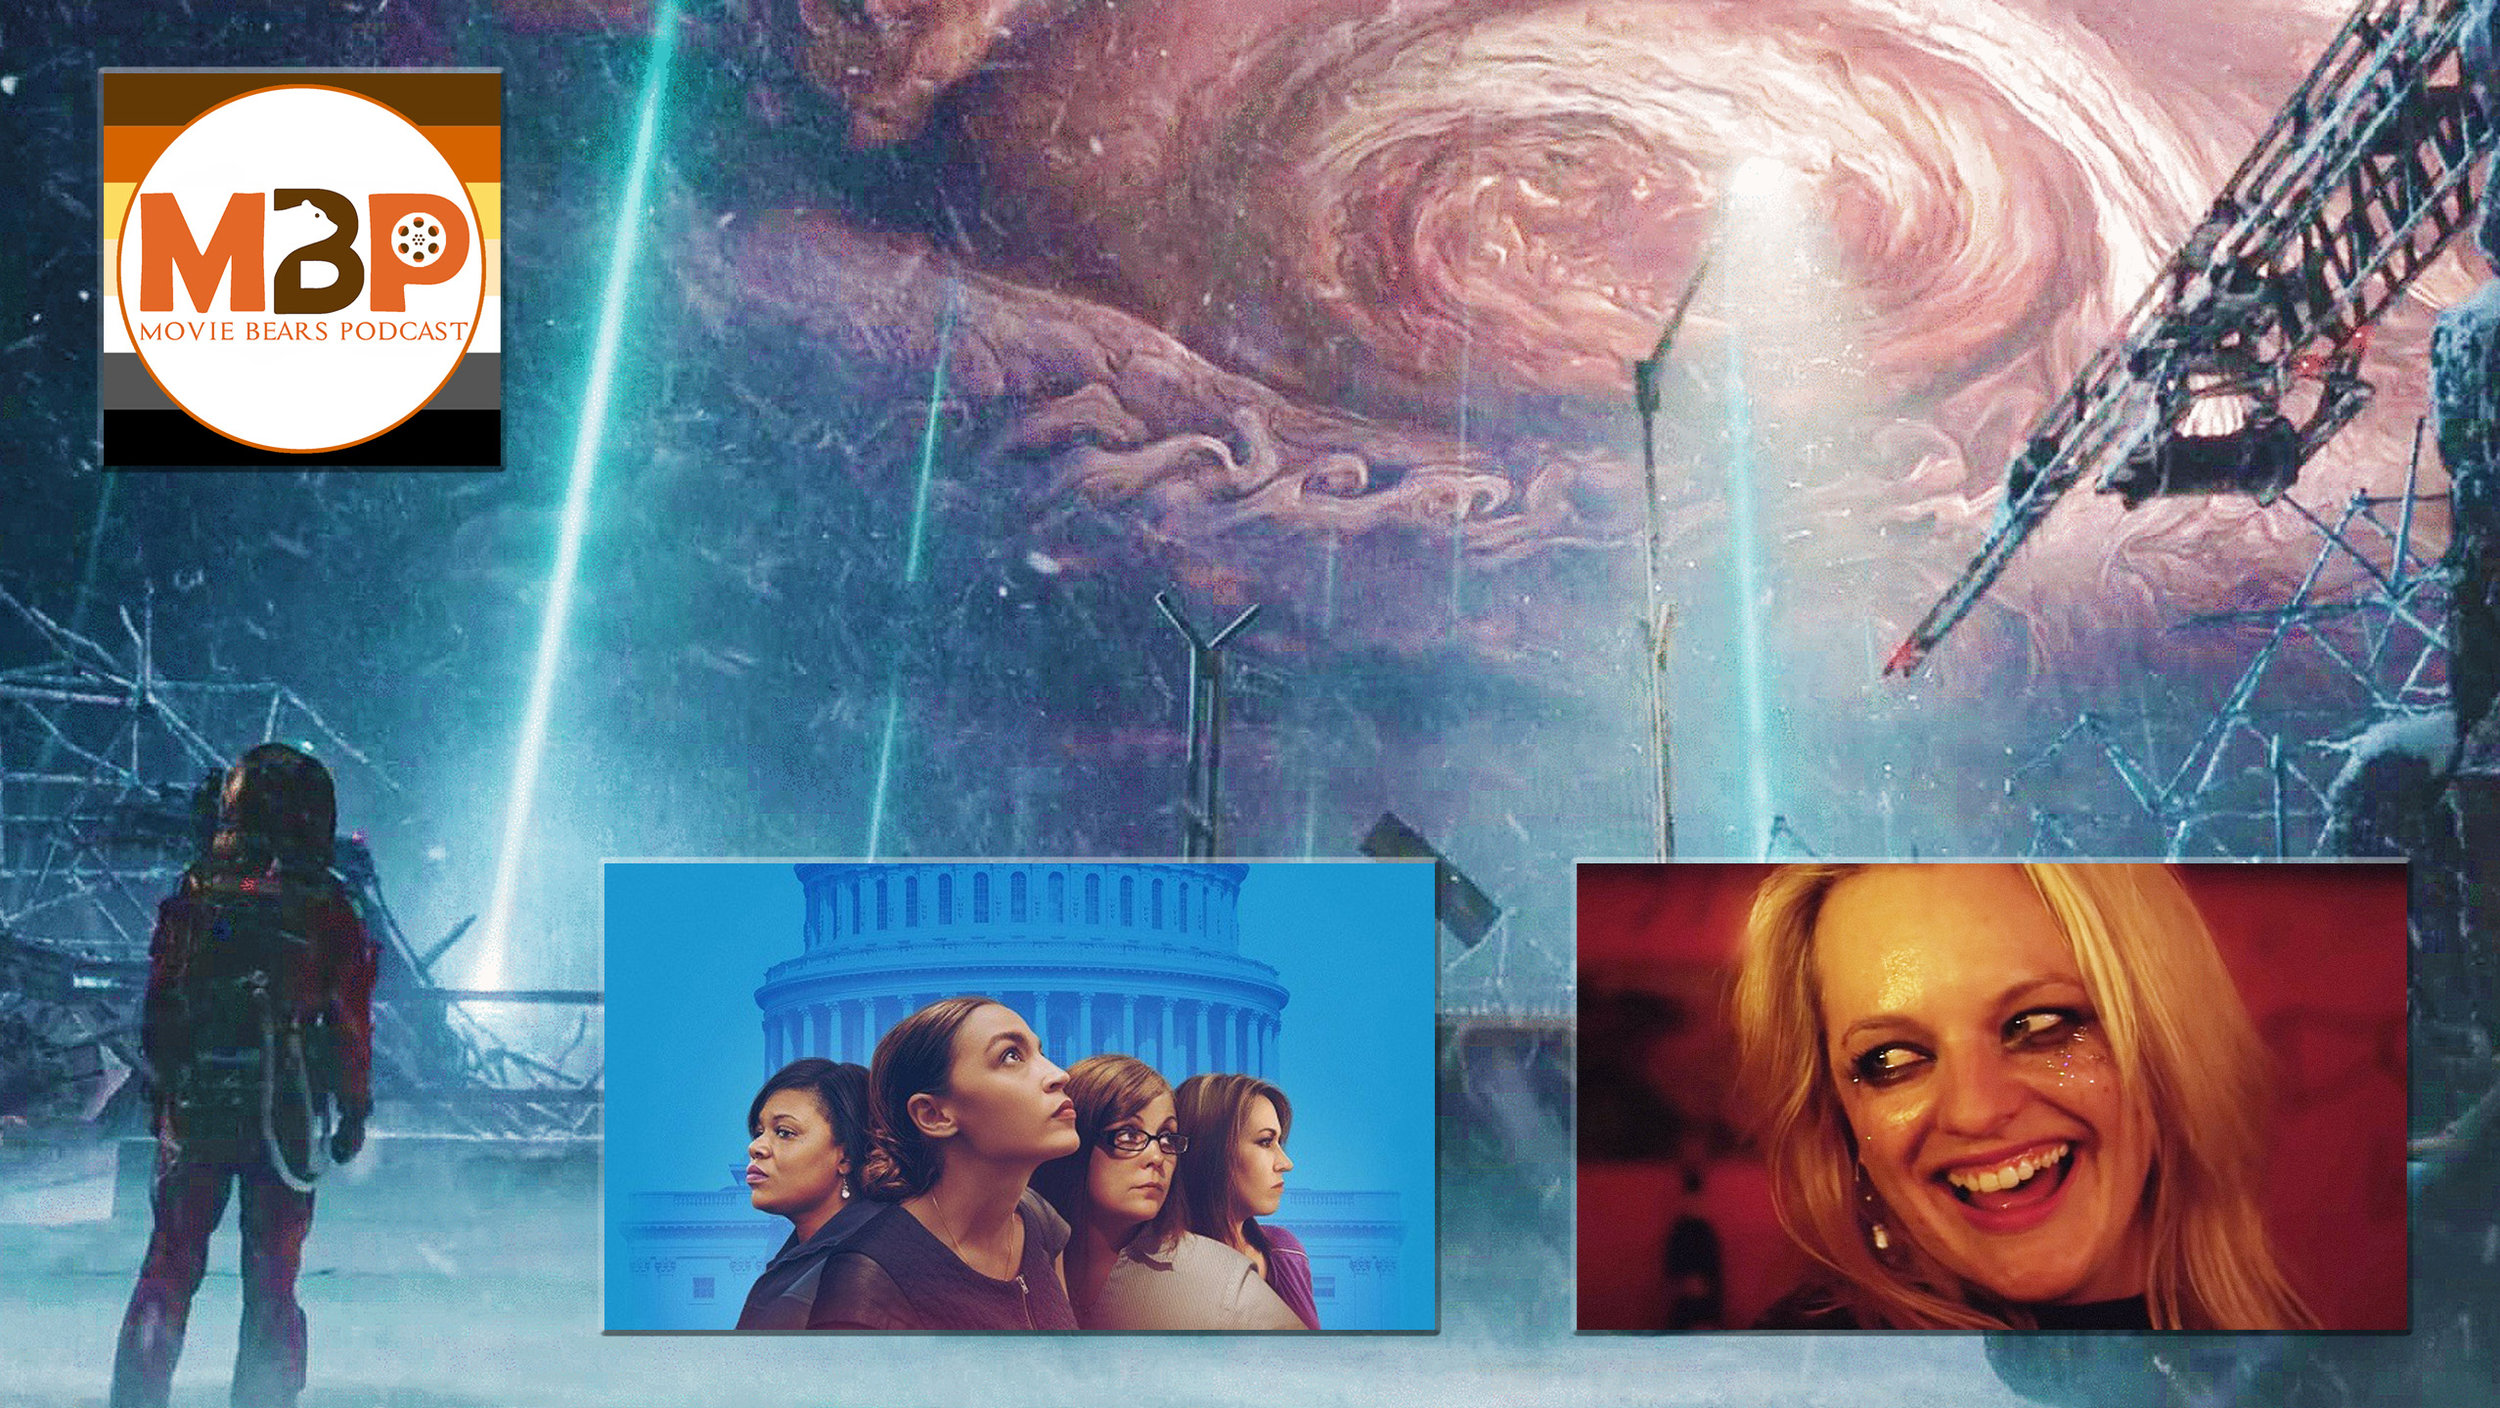 """M   BP e3   22    -    Streaming Round-Up    (5/16/19)    This episode is your chance to """"Netflix and chill"""" with the husky, hairy, huggable homos. It's a Streaming/VOD Round-up as we talk about several recent and interesting movies we've watched and that are available now for streaming or rental. So curl up in your Snuggy, grab your perfectly buttered microwave popcorn, and join us as we talk about some movies you can watch from the comfort of your own home!"""